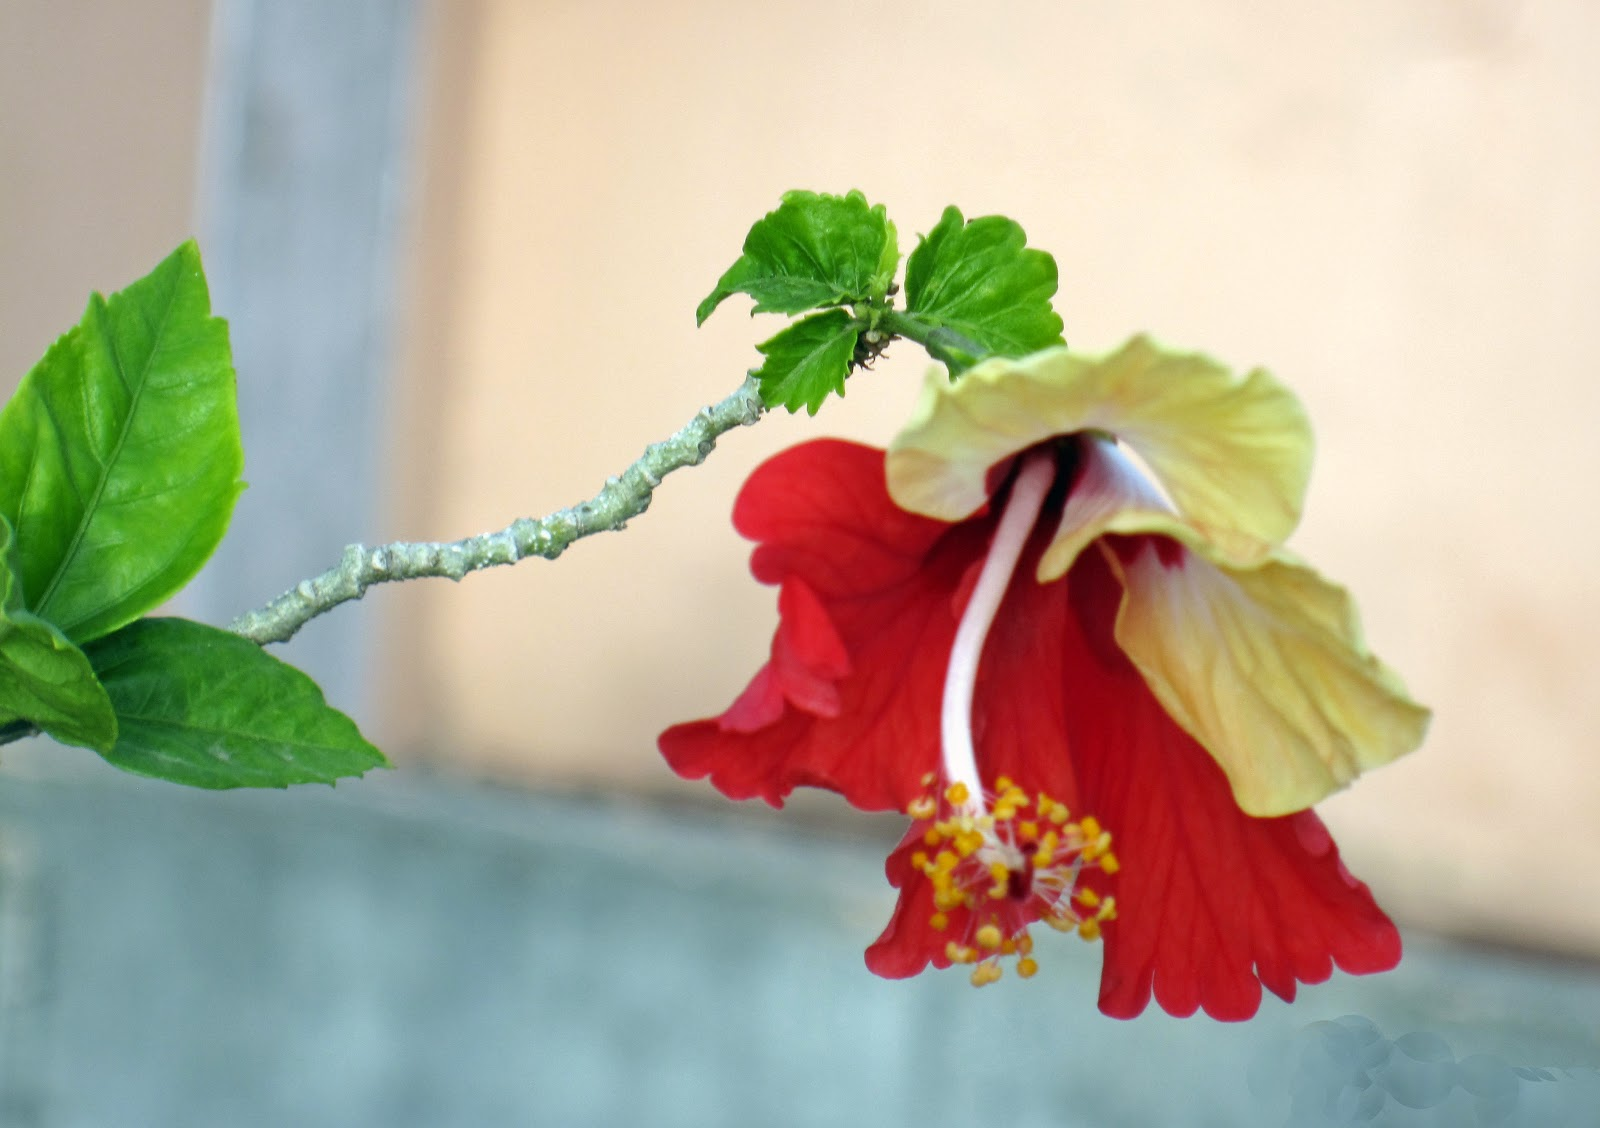 Hibiscus Are Very Beautiful With Yellow And Red 100